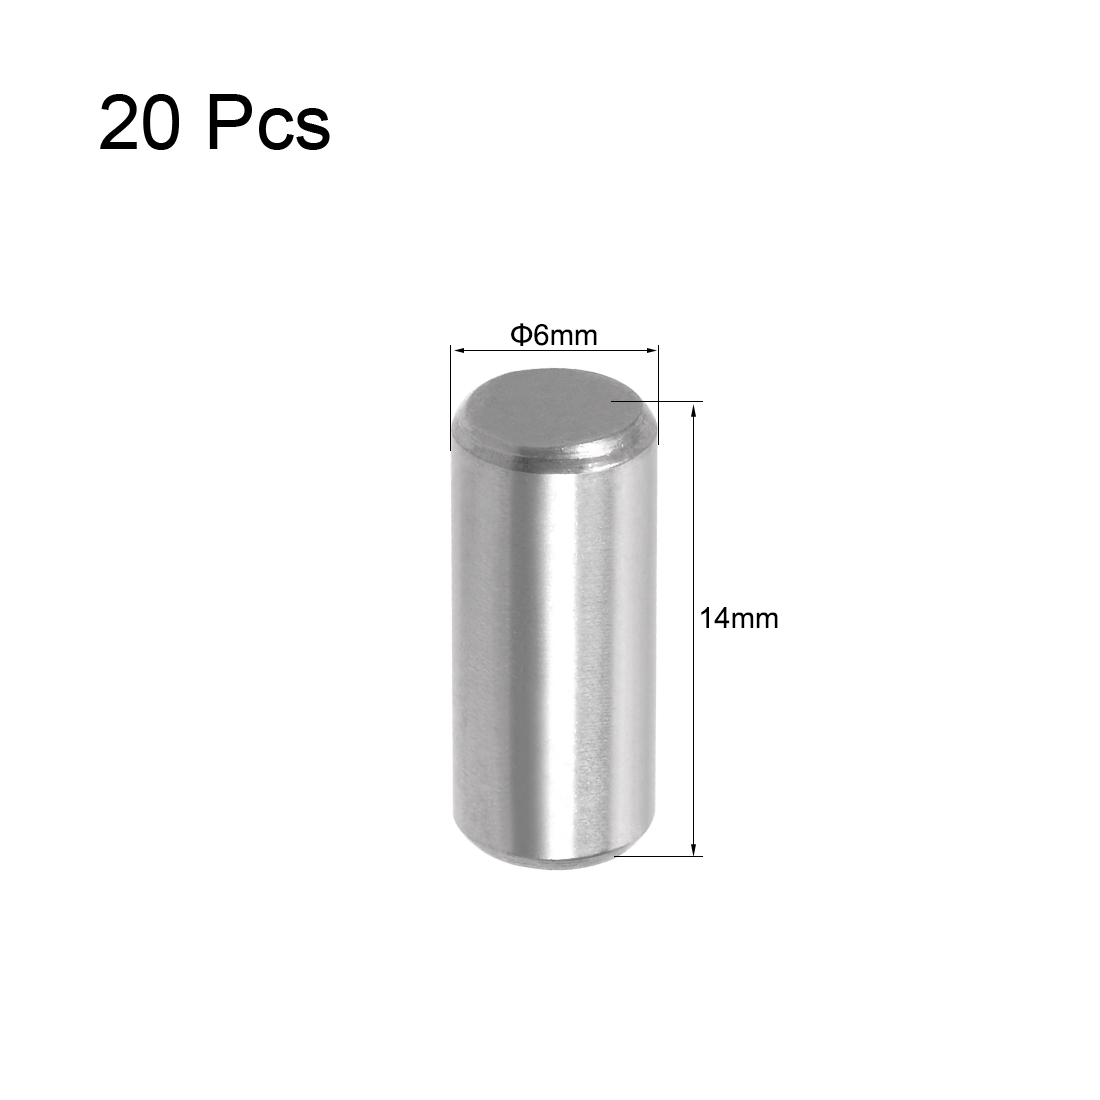 Uxcell 20Pcs M5 M6 304 Stainless Steel Dowel Pin Cylindrical Pin Locating Dowel Shelf Support Pin Fasten Elements M5x20 M6x14